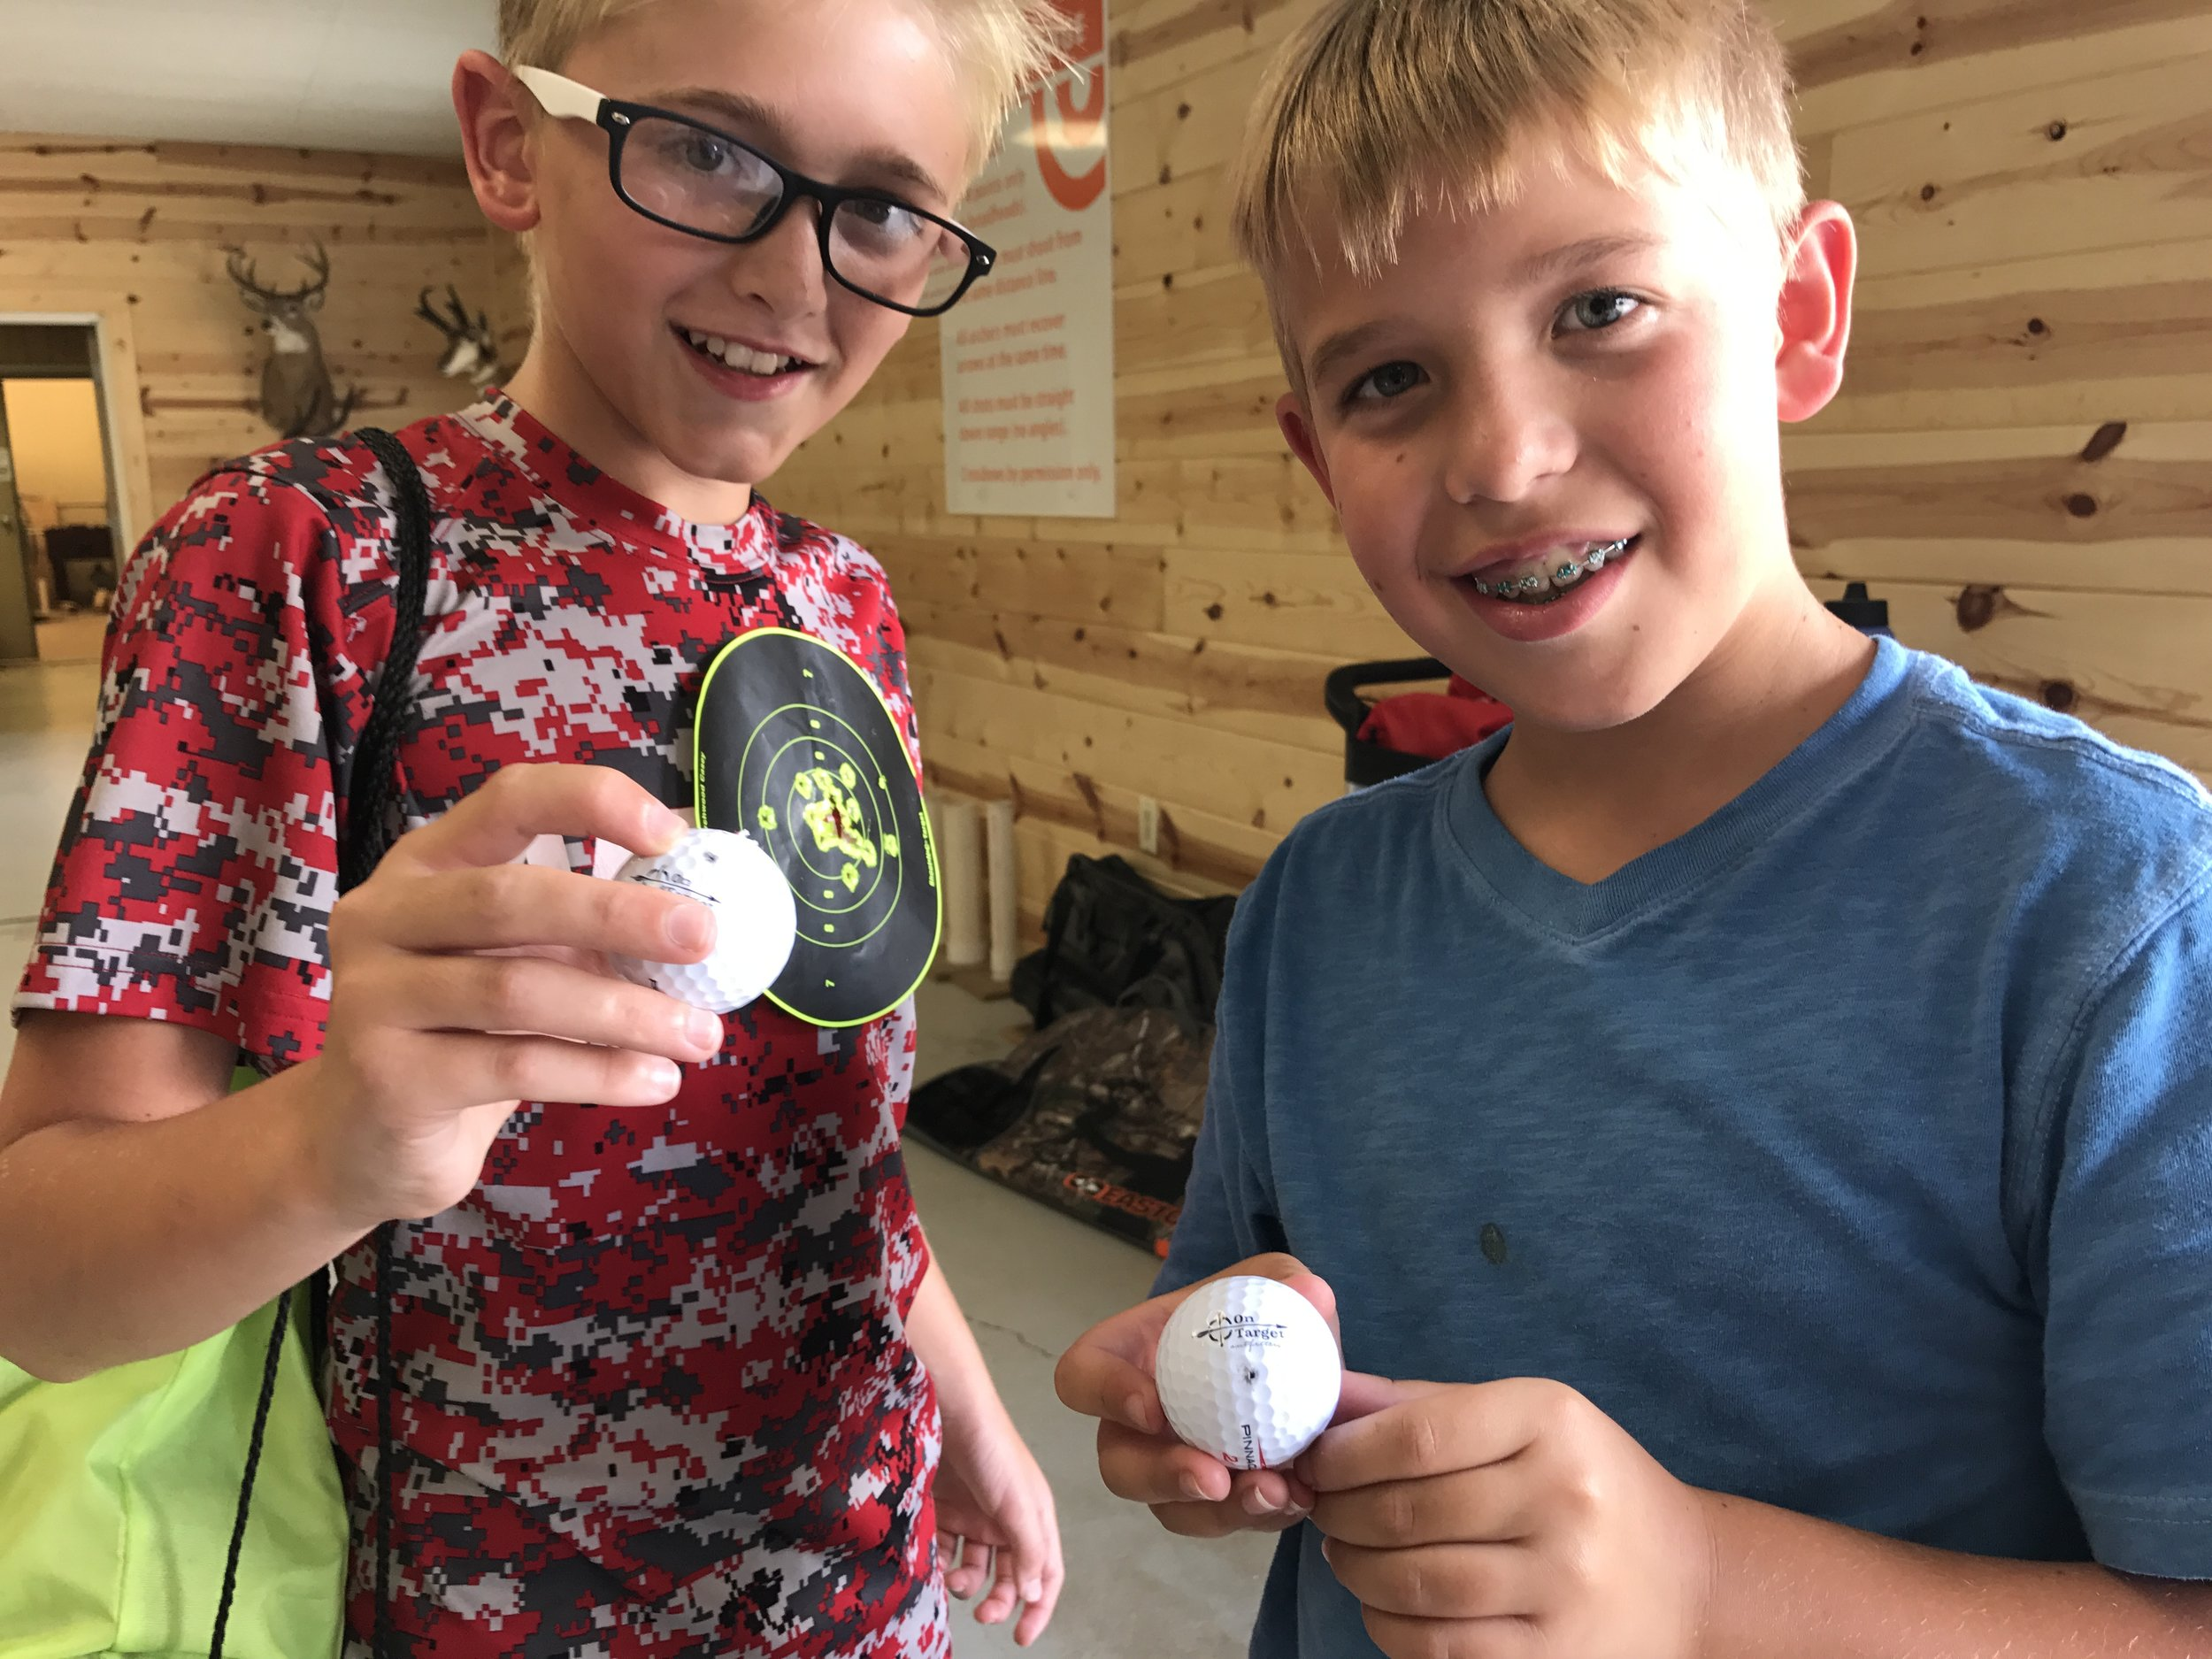 Successful golf ball shoot, and they get to take them home!